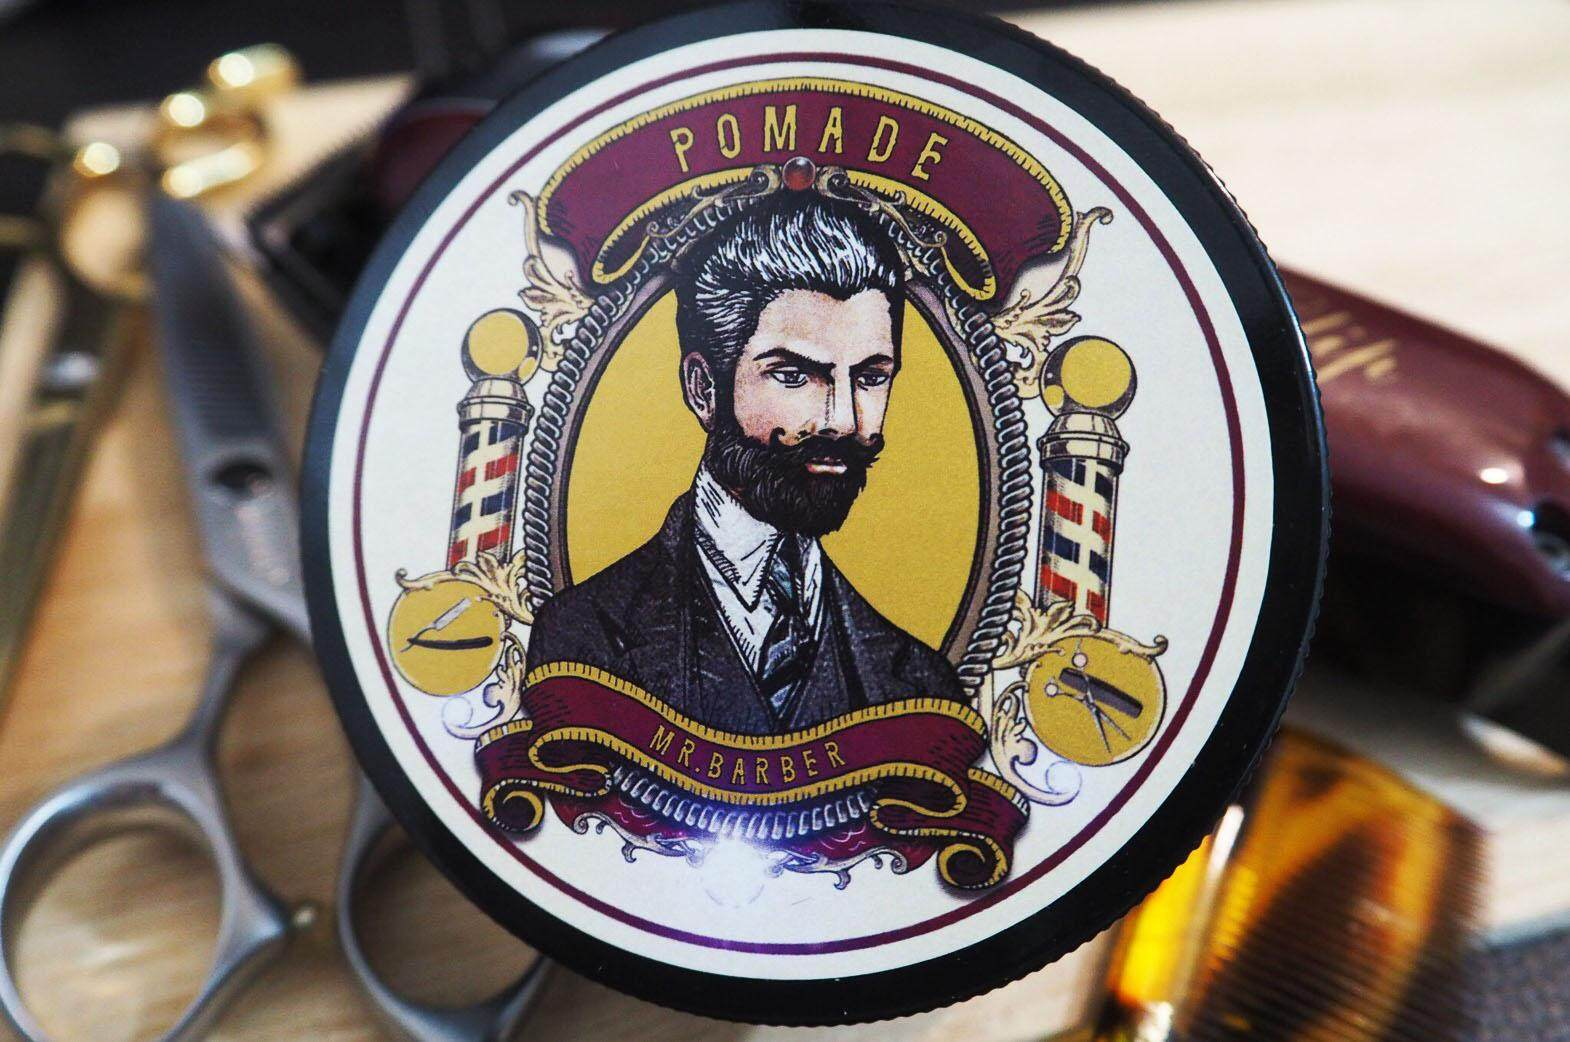 Mr.barber Pomade